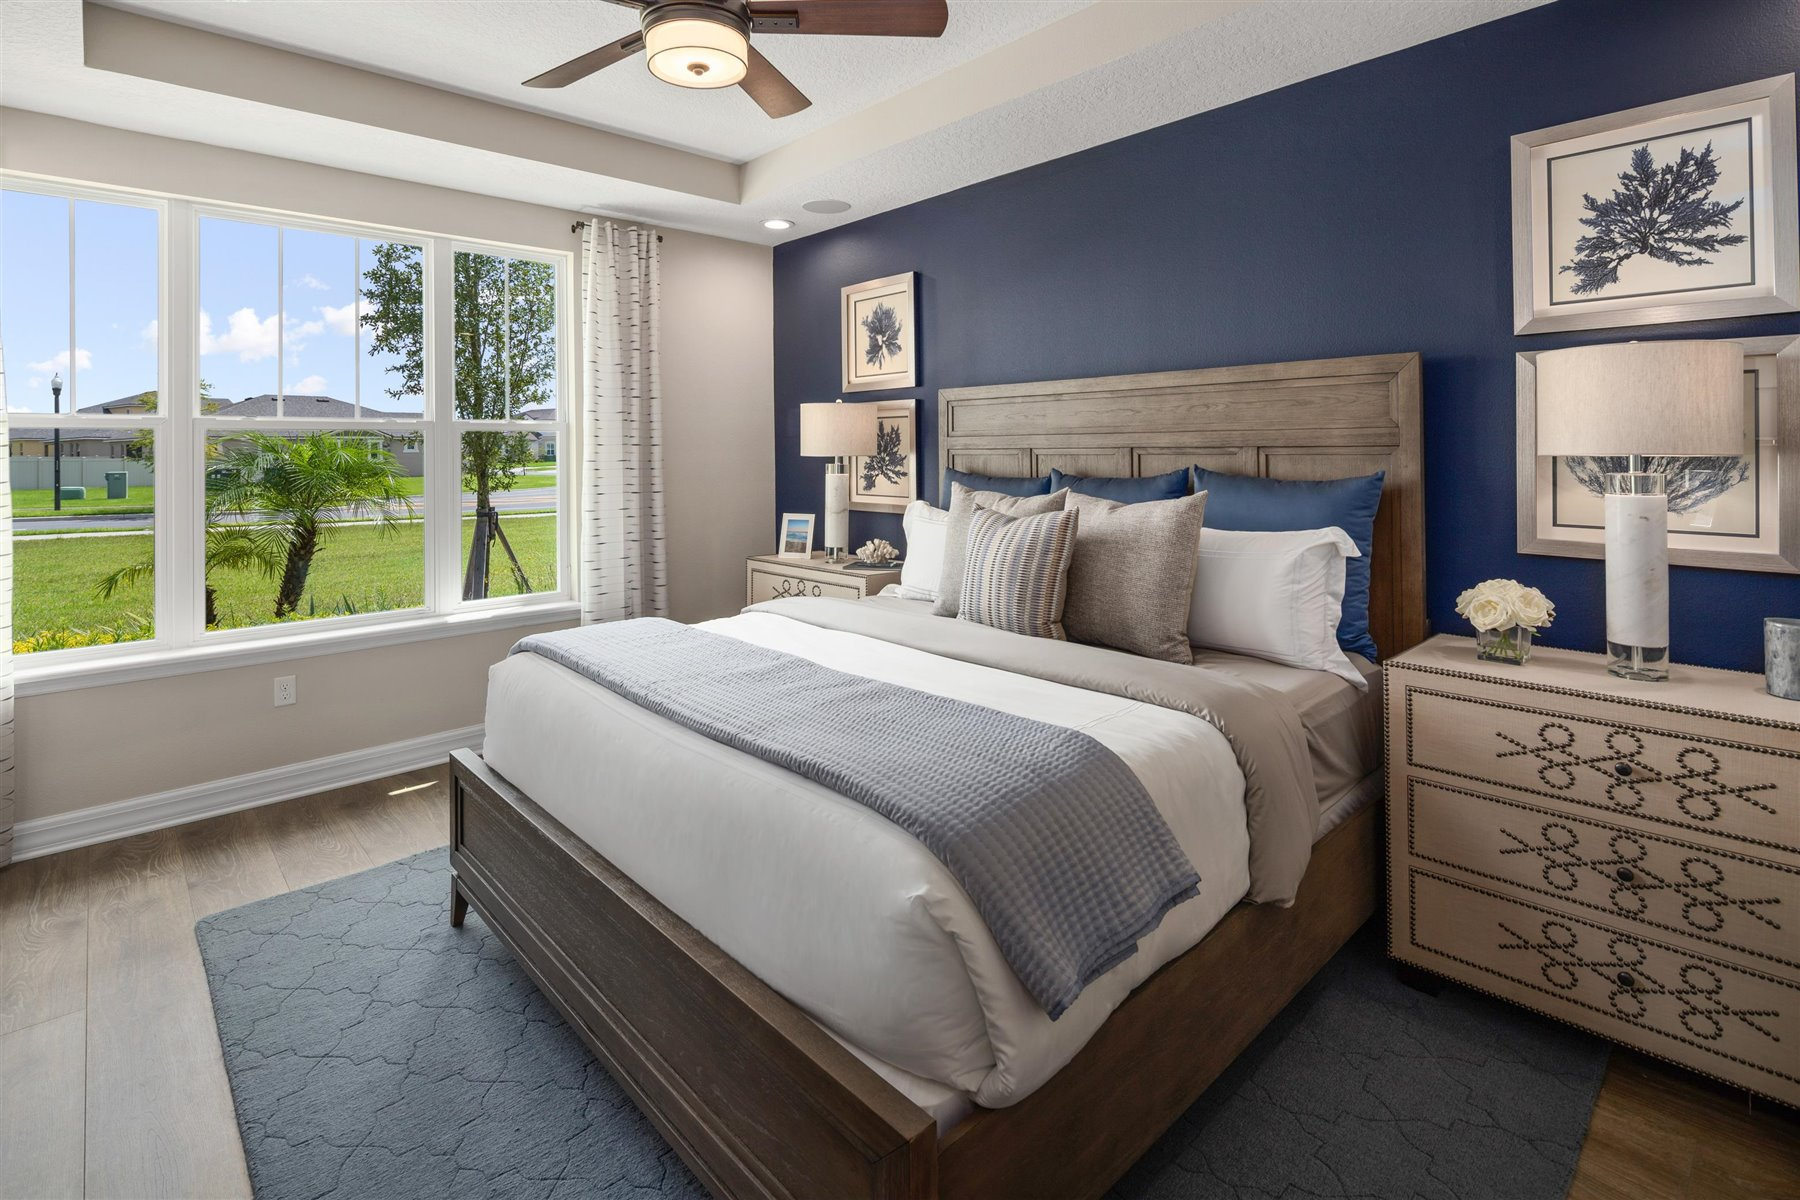 Selena III Plan Bedroom at Waterbrooke in Clermont Florida by Mattamy Homes